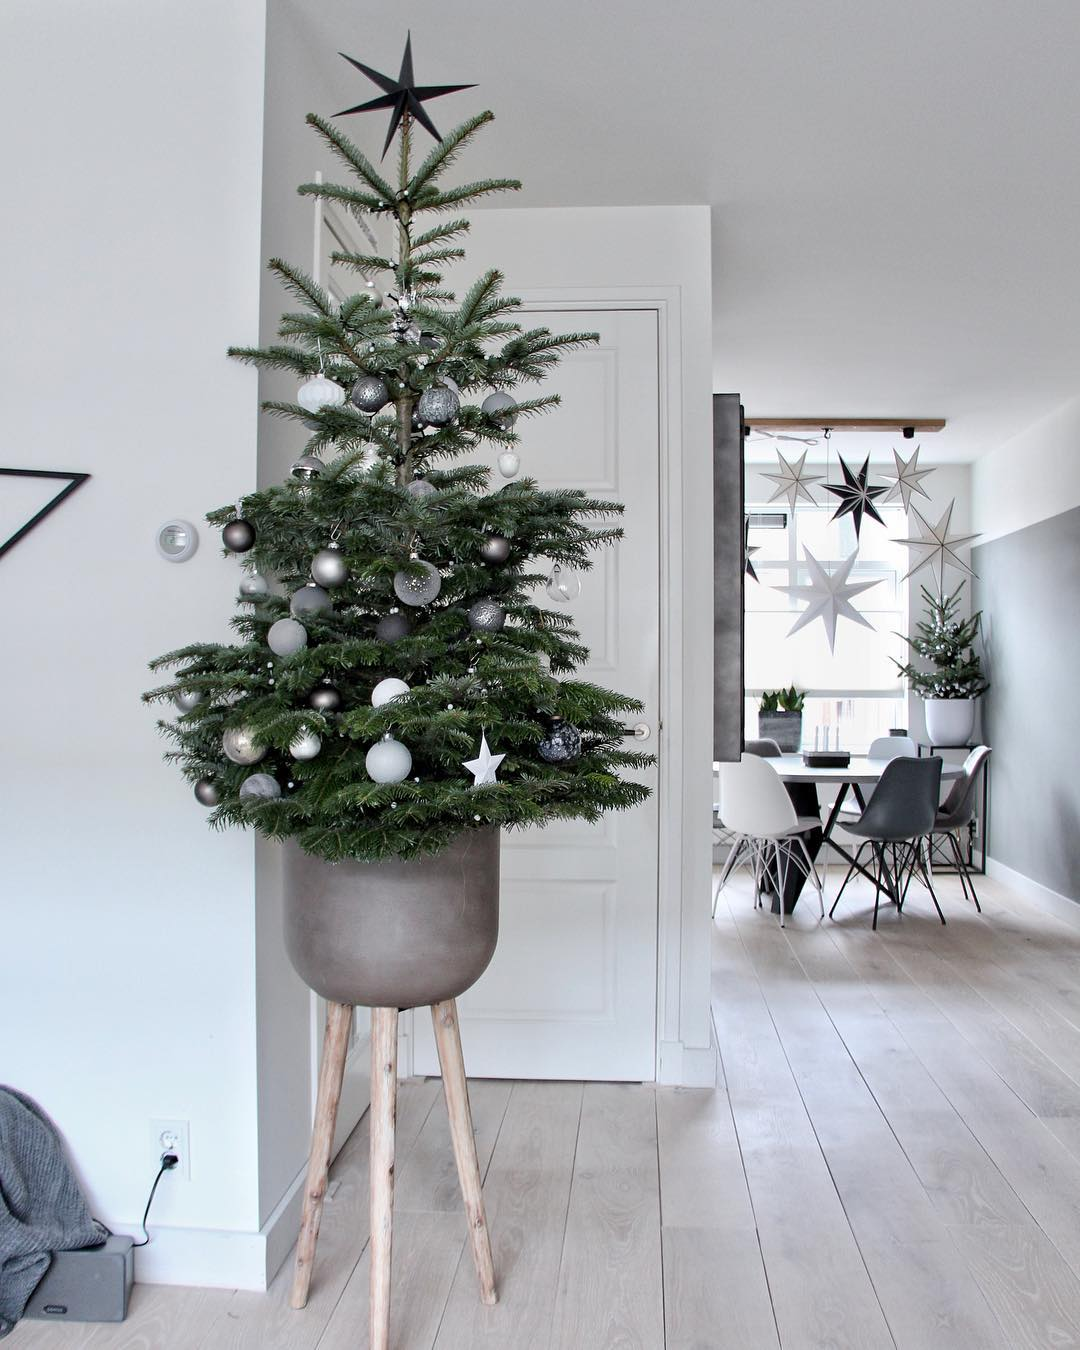 Top Scandinavian style Christmas Decor Inspo from instagram